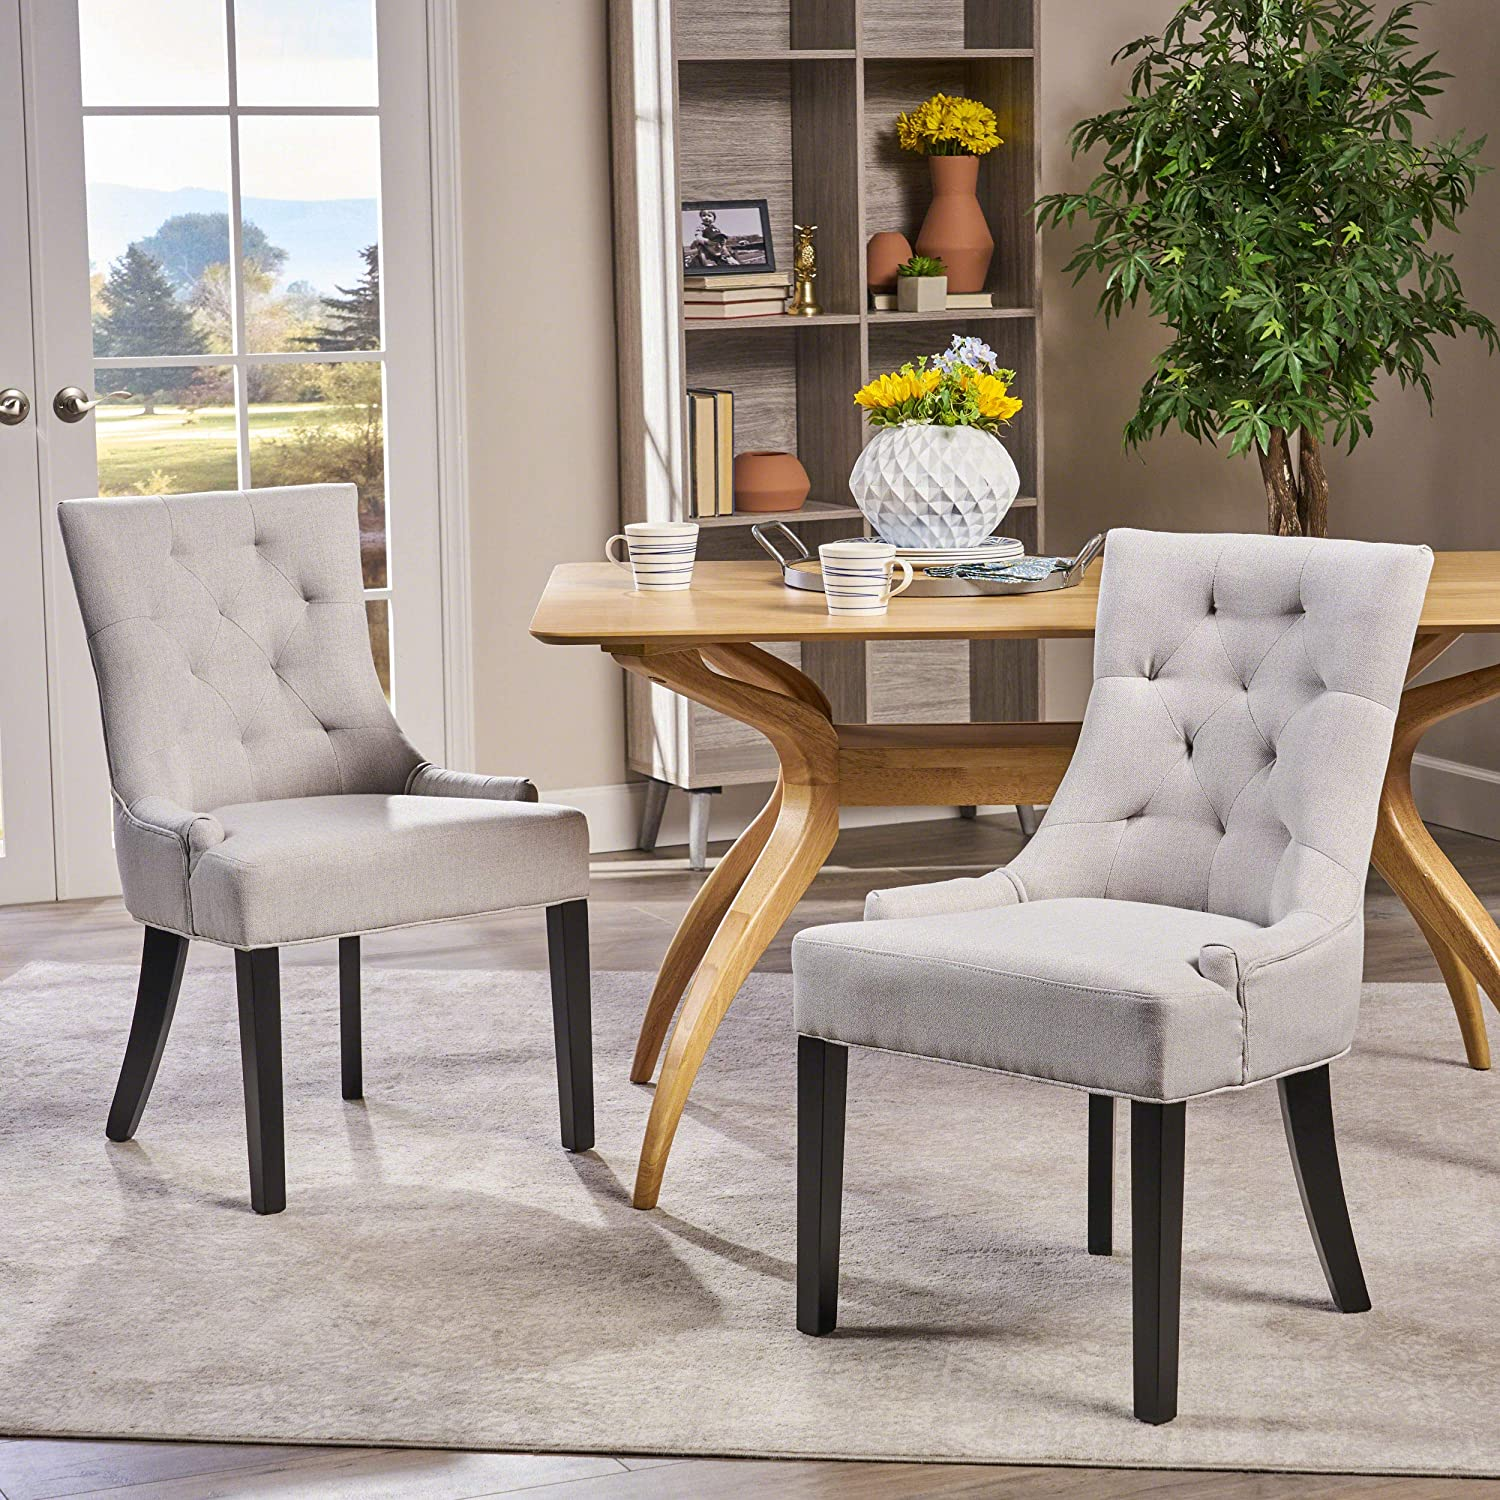 Christopher Knight Home Hayden Fabric Dining Chairs Set of 2 , Light Gray